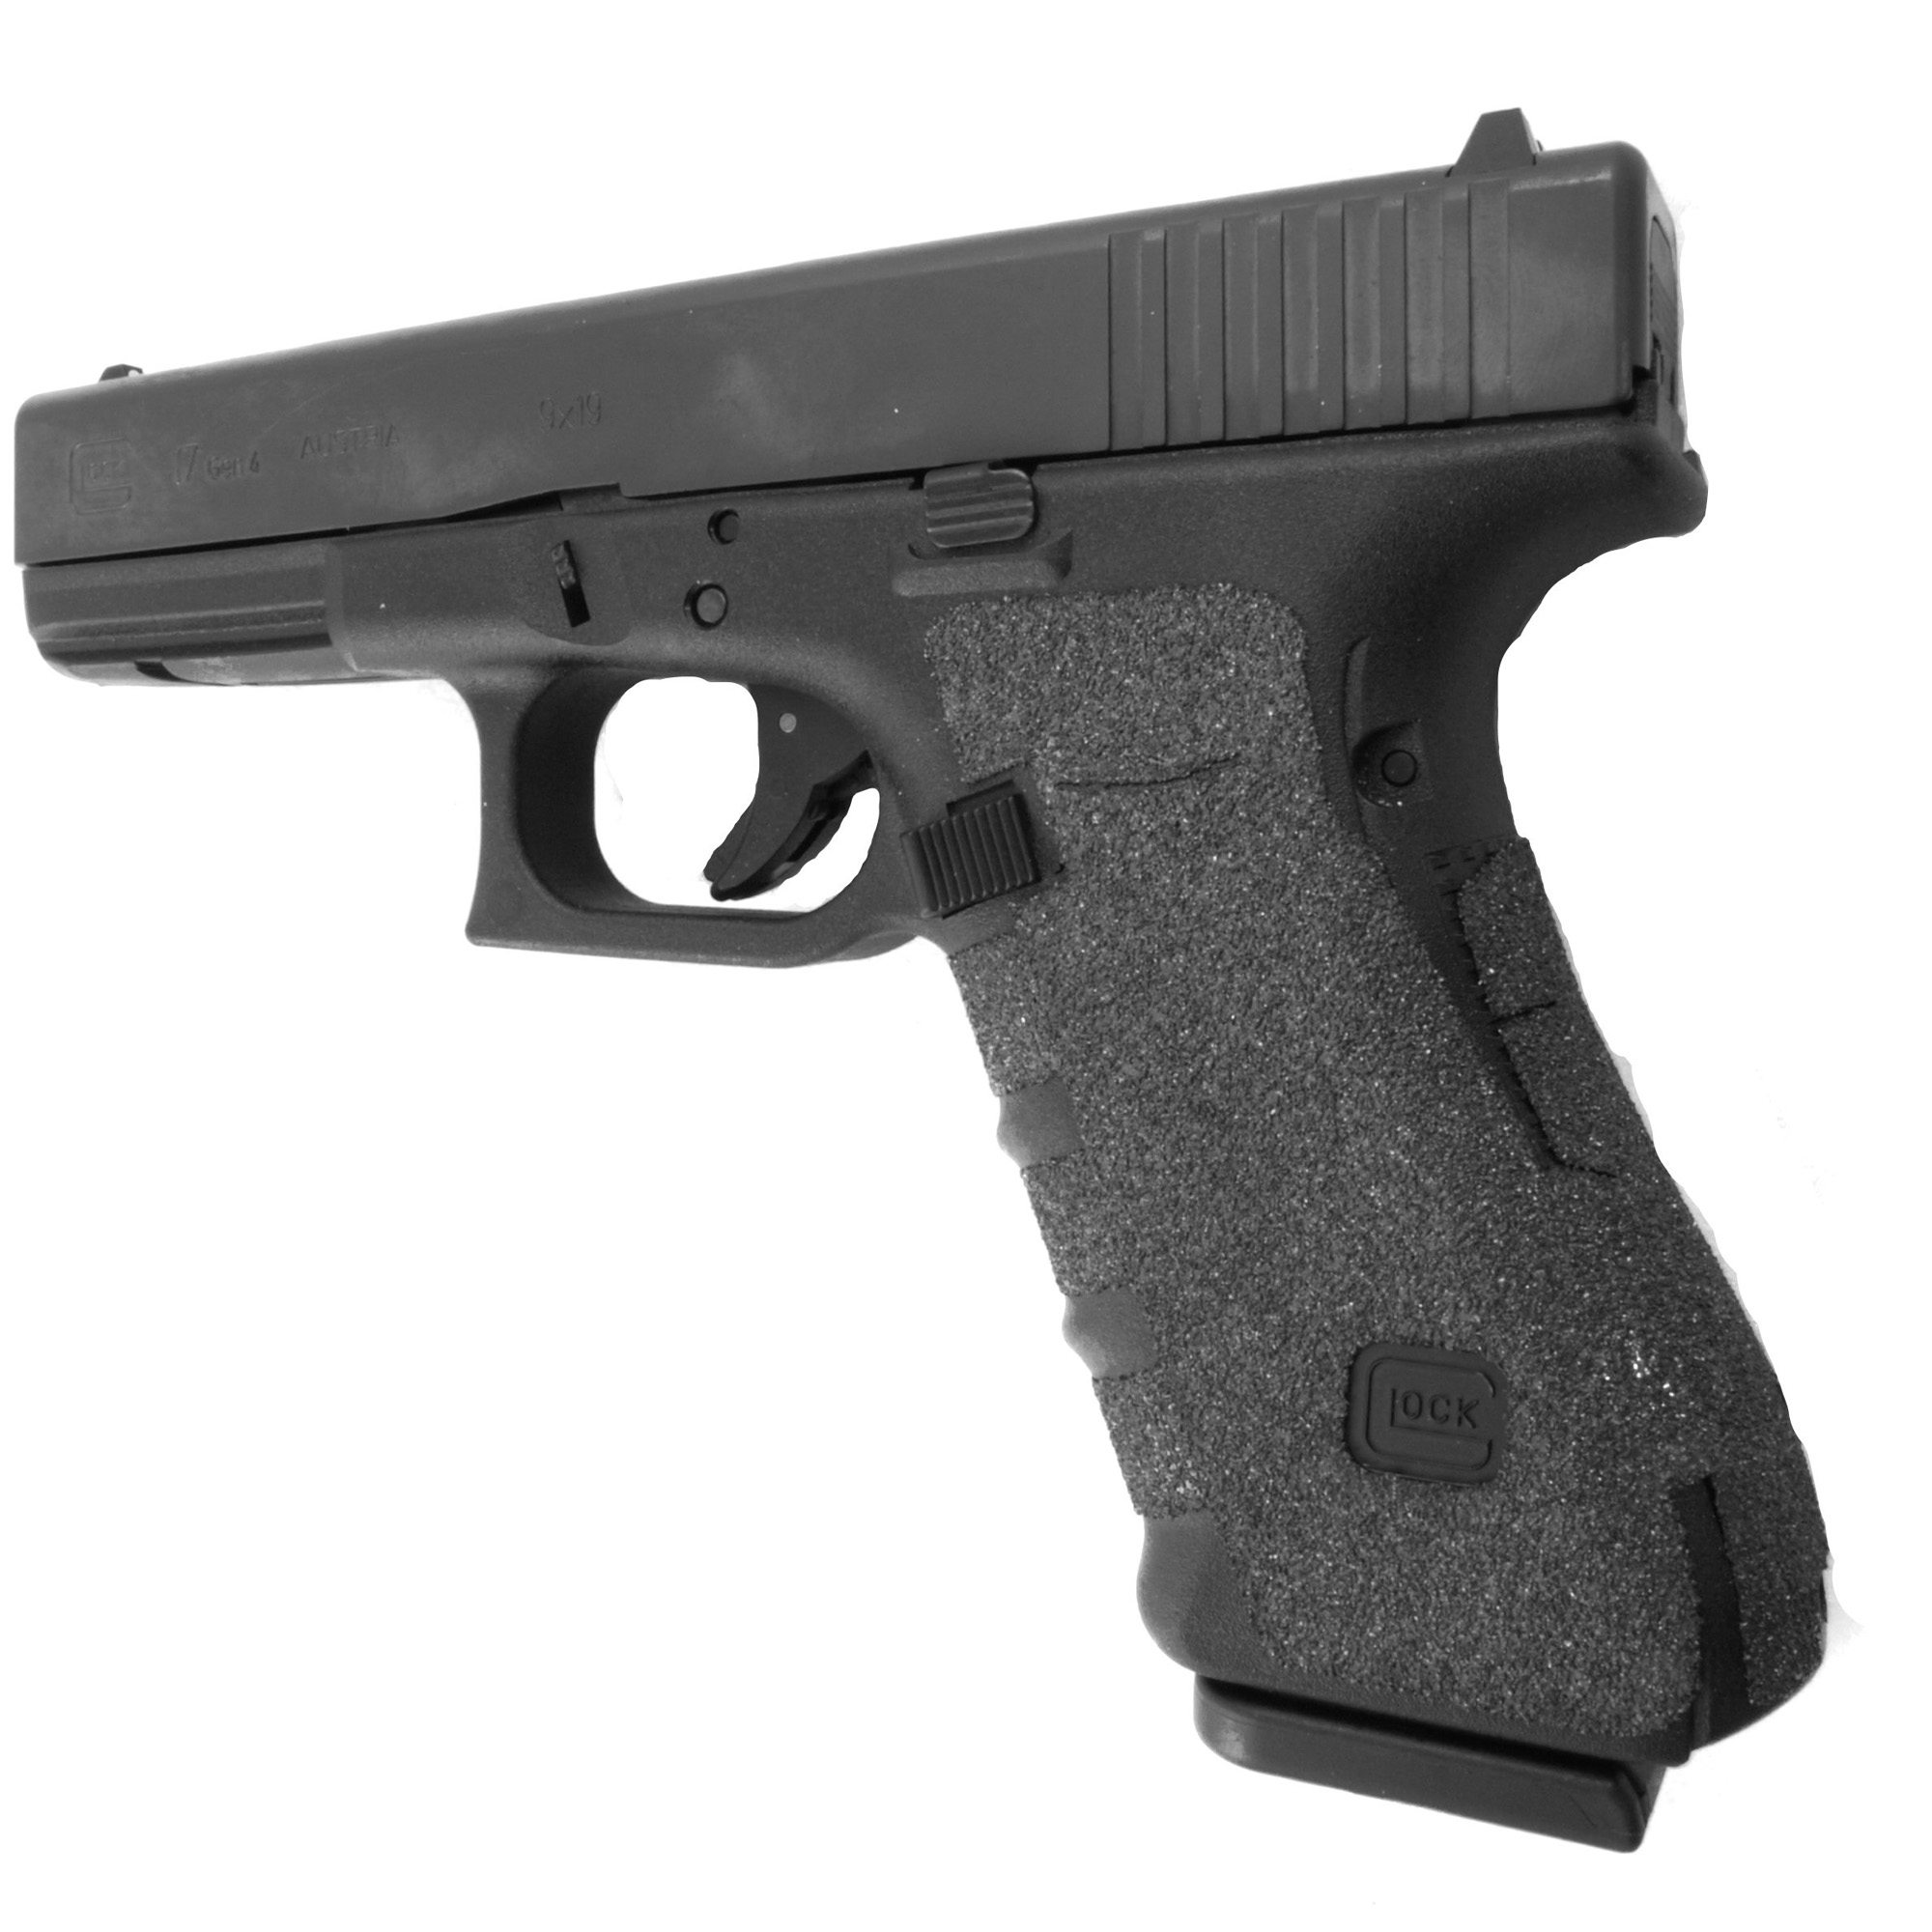 """TALON Grips for Glock Model 17"""" 22"""" 24"""" 31"""" 34"""" 35"""" and 37 models Gen 1"""" 2"""" 3. This rear wrap grip is in the granulate texture. This grip provides full coverage on the side panels including above the thumb rest"""" ample coverage on the backstrap"""" and three finger wraps for the finger groves under the trigger guard. This grip has a logo cutout for the Glock emblem on the left side of the handle. This grip sticks extremely well even with the Rough Textured Frame (RTF)."""